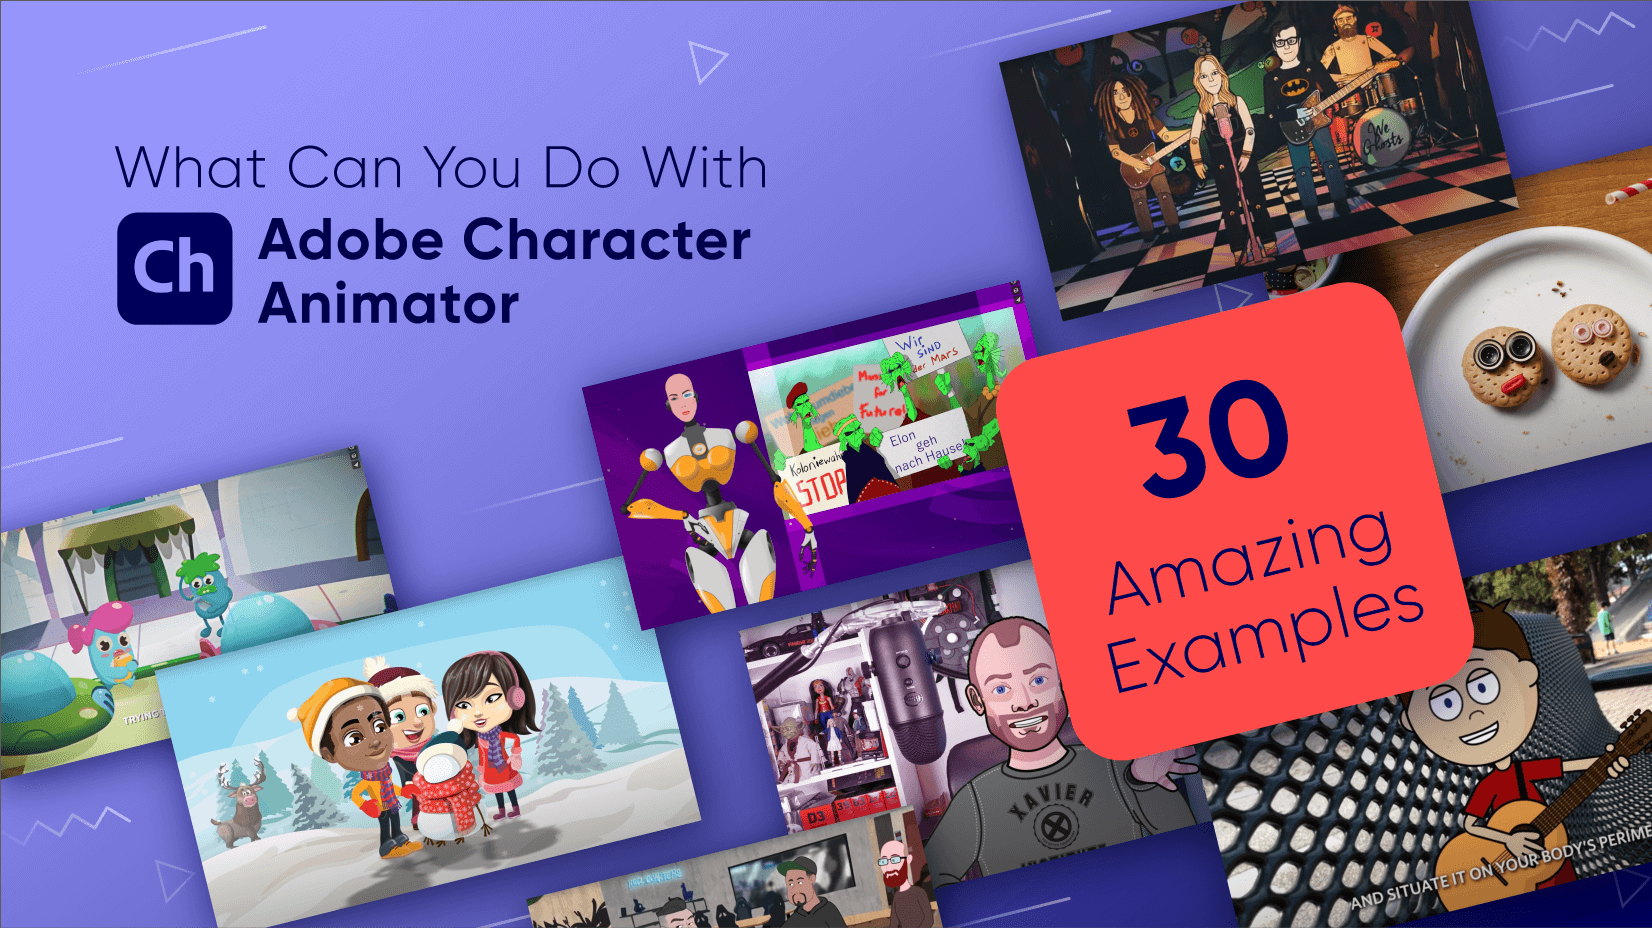 What Can You Do With Adobe Character Animator - The Best Examples